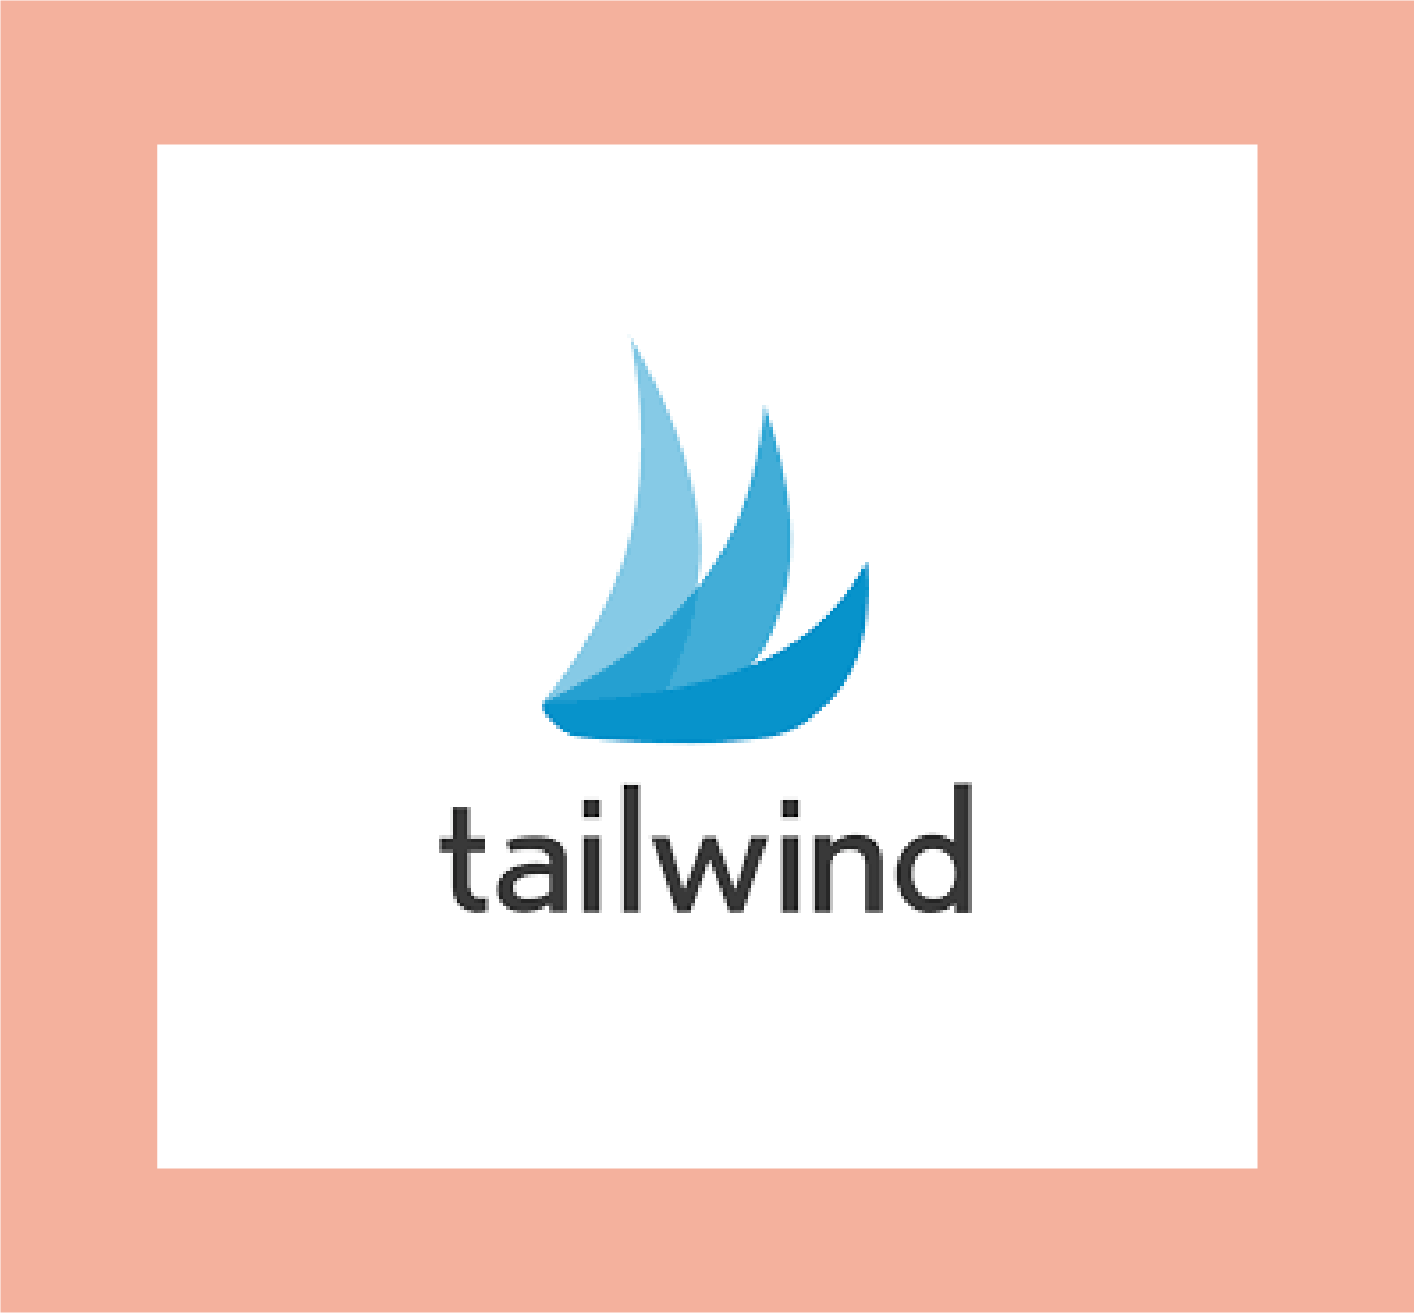 Tailwind for Pinterest Scheduling - Click here to get a free $15 credit.